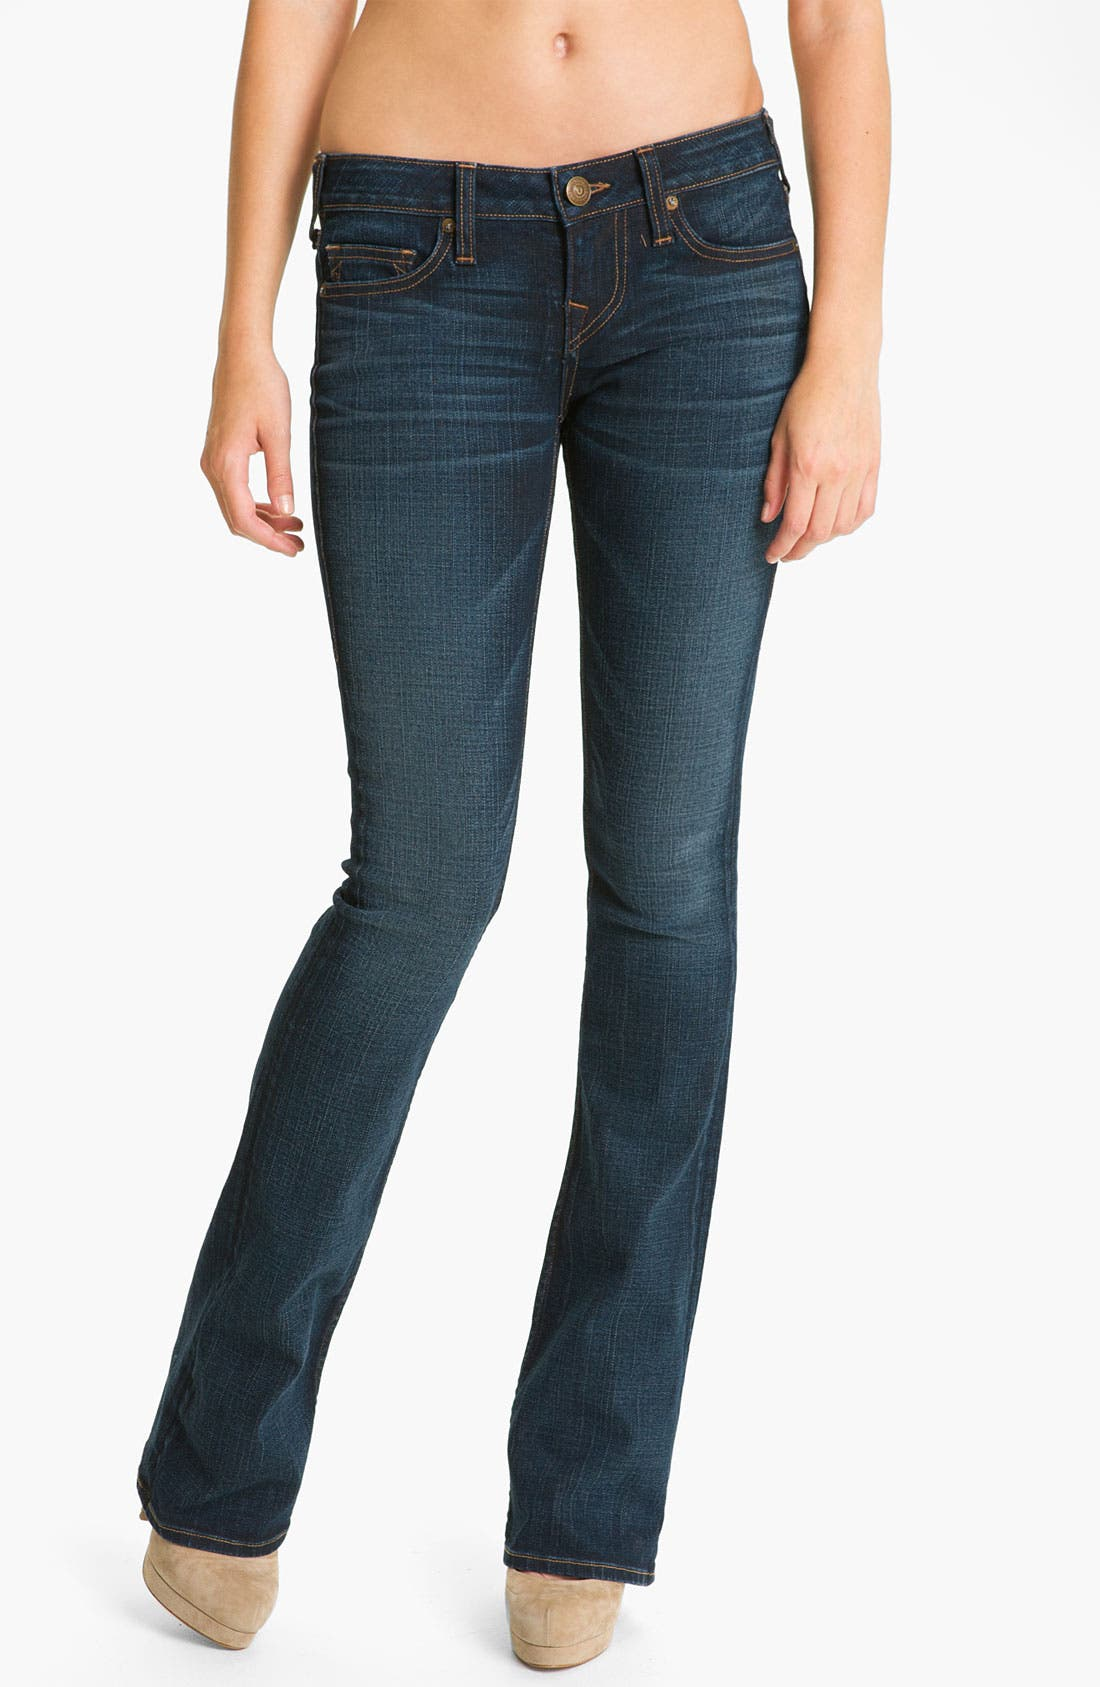 Alternate Image 1 Selected - True Religion Brand Jeans 'Bobby' Boot Cut Jeans (Tim Luckdraw)